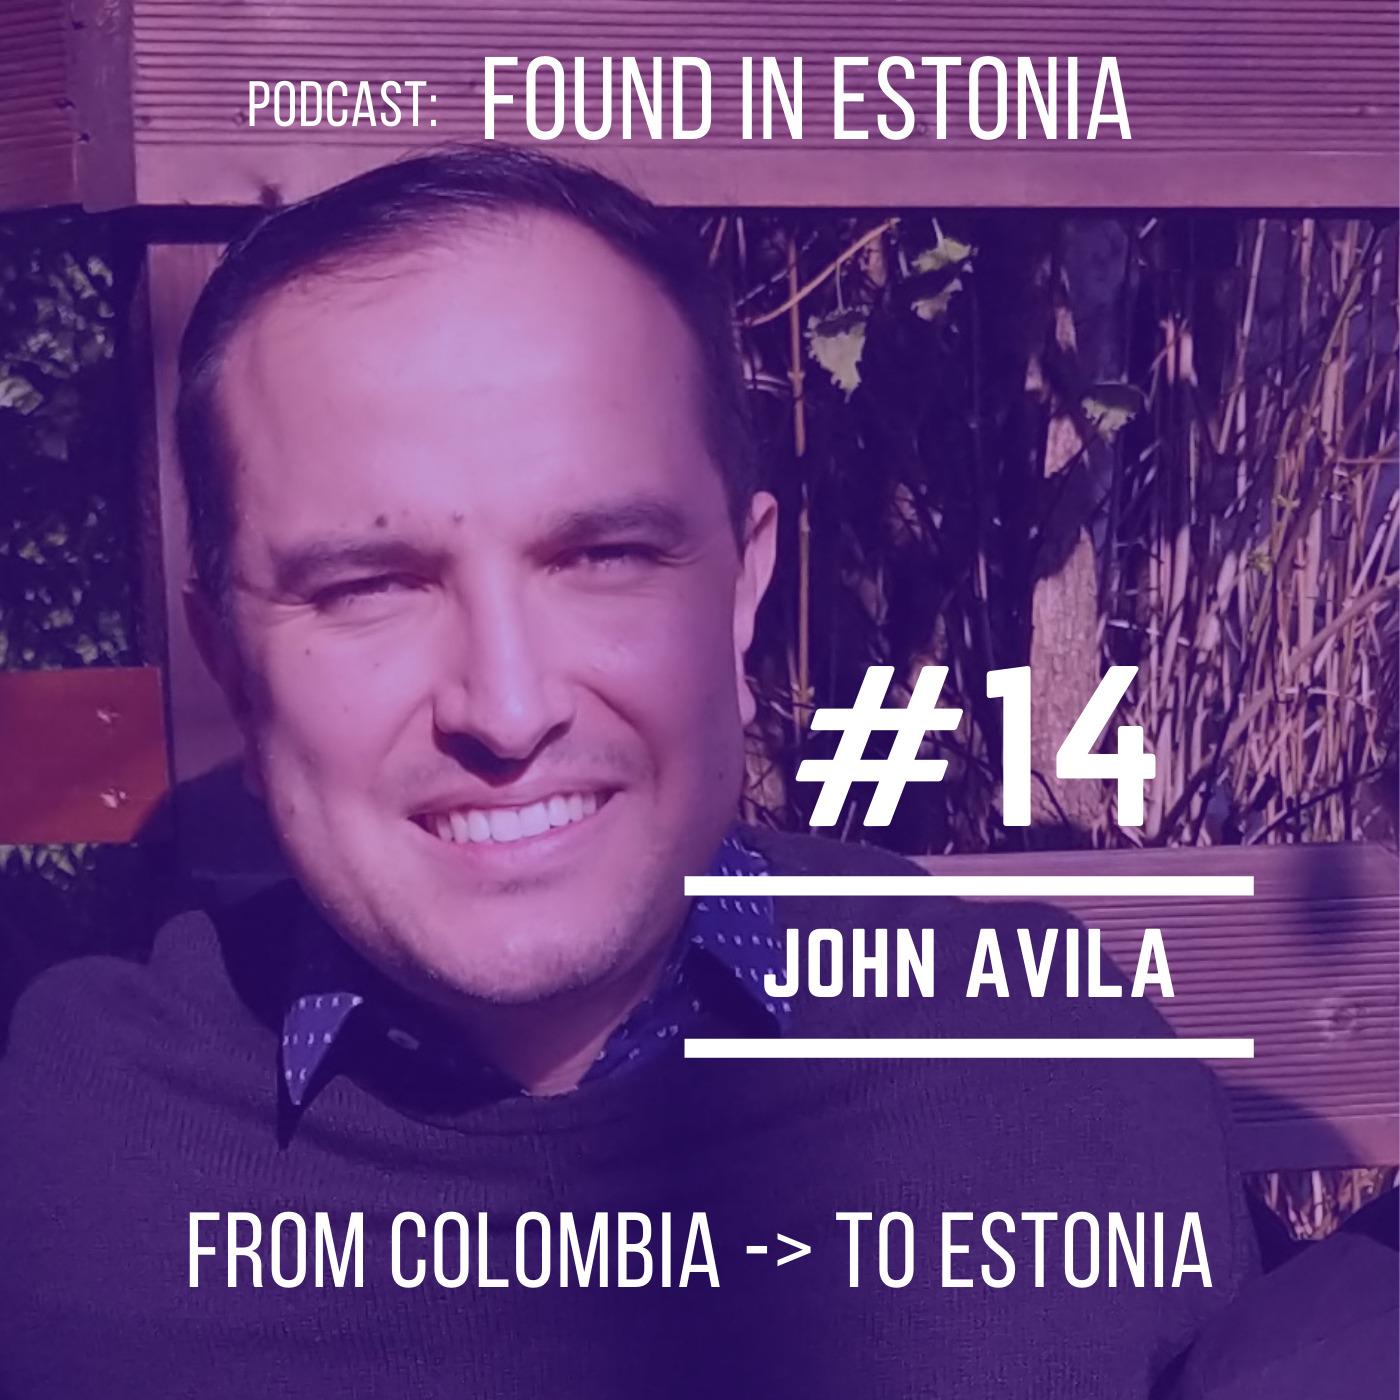 #14 John Avila from Colombia to Estonia